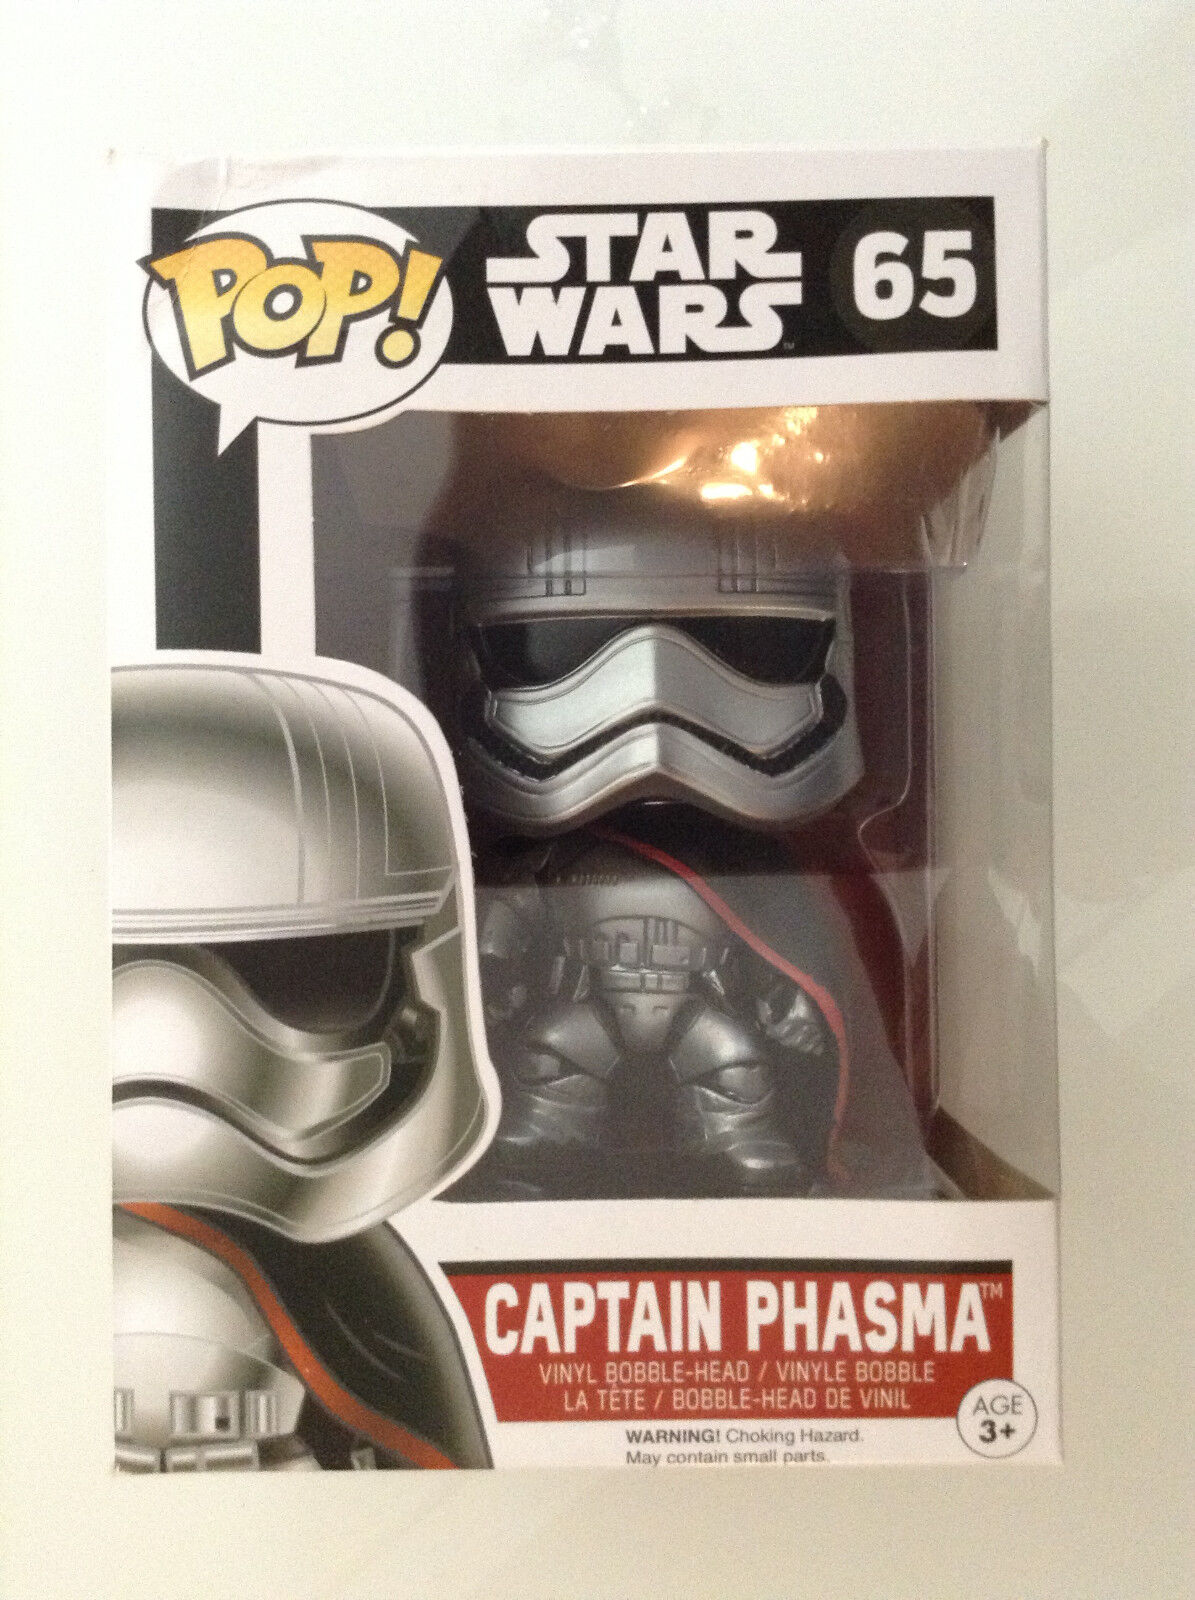 POP POP POP  STAR WARS THE FORCE AWAKENS CAPTAIN PHASMA VINYL BOBBLE-HEAD No 65 BY FUNKO 502af4